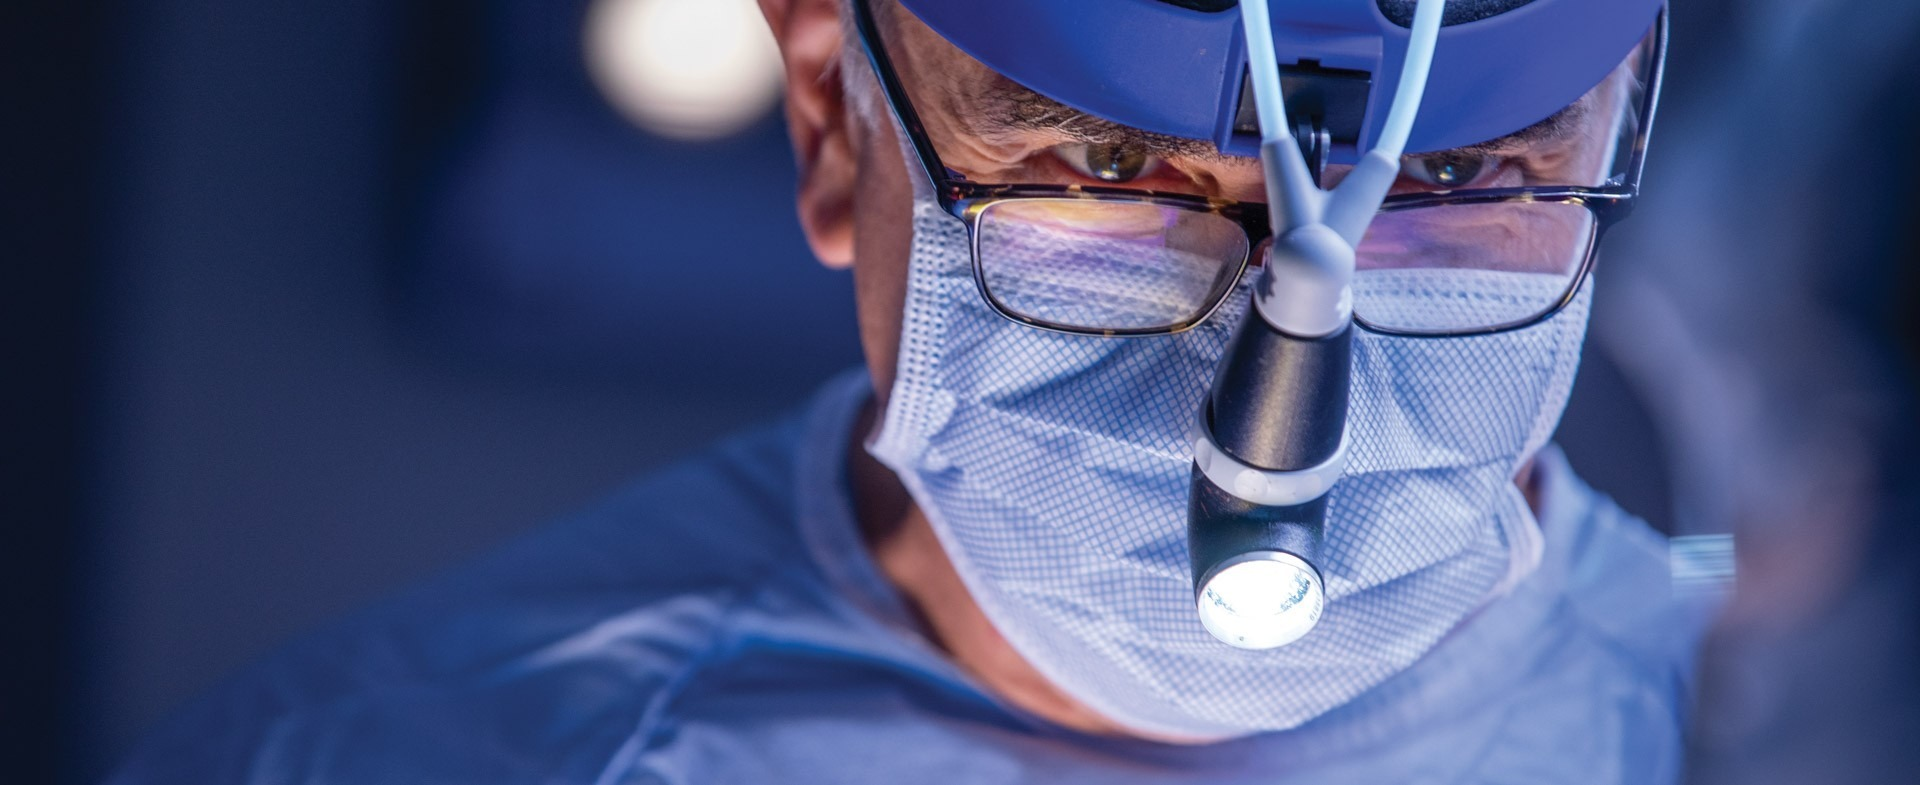 Close up image of TGH cardiothoracic surgeon during procedure